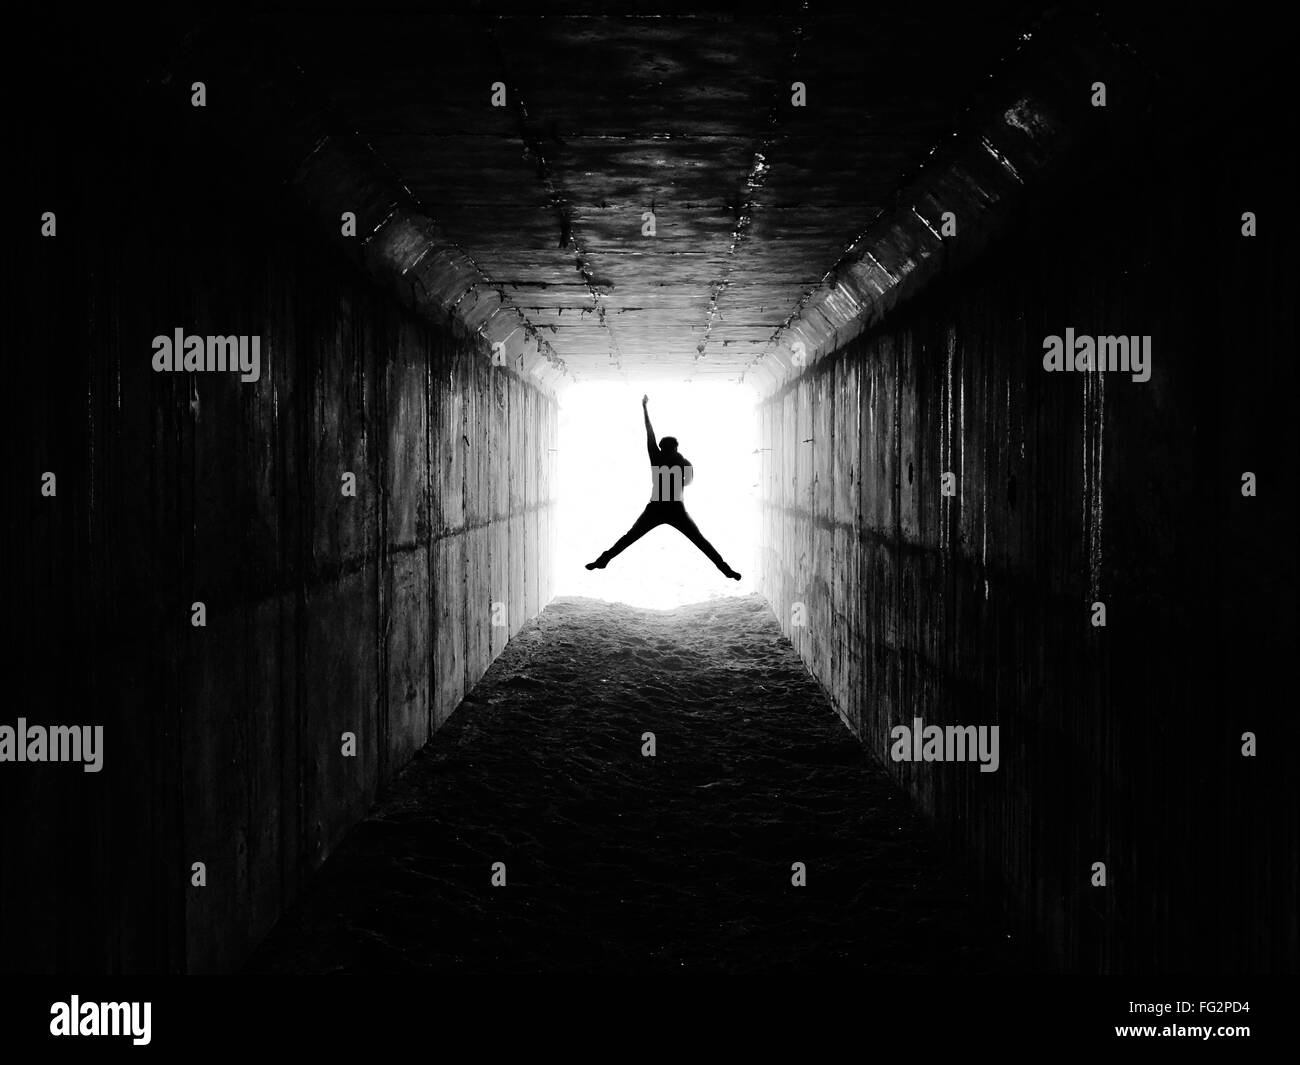 View Of Man Jumping In Excitement In Tunnel - Stock Image